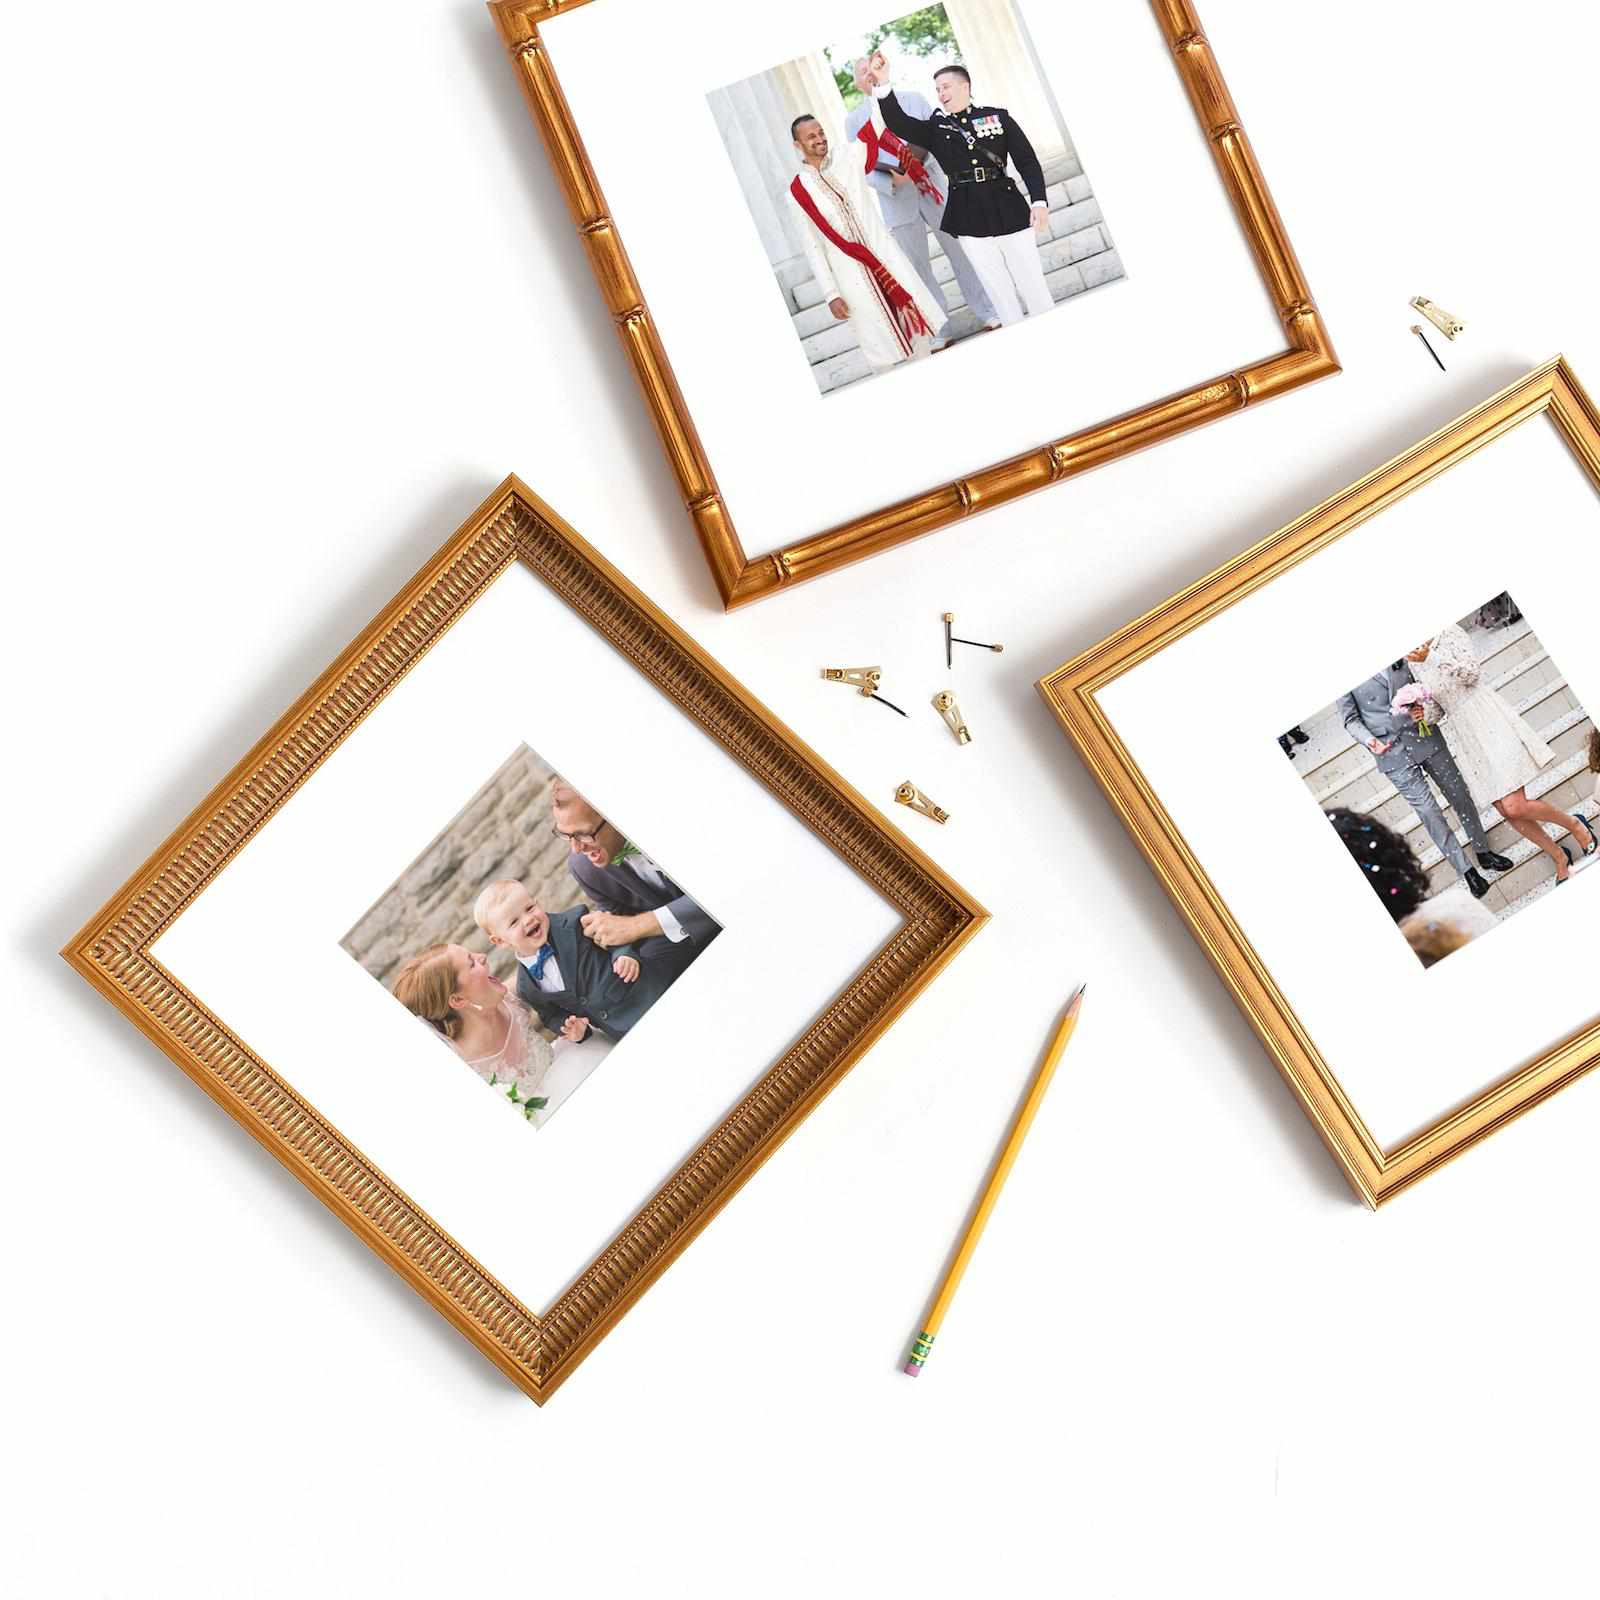 10 Companies That Make Framing Your Wedding Photos Oh So Easy